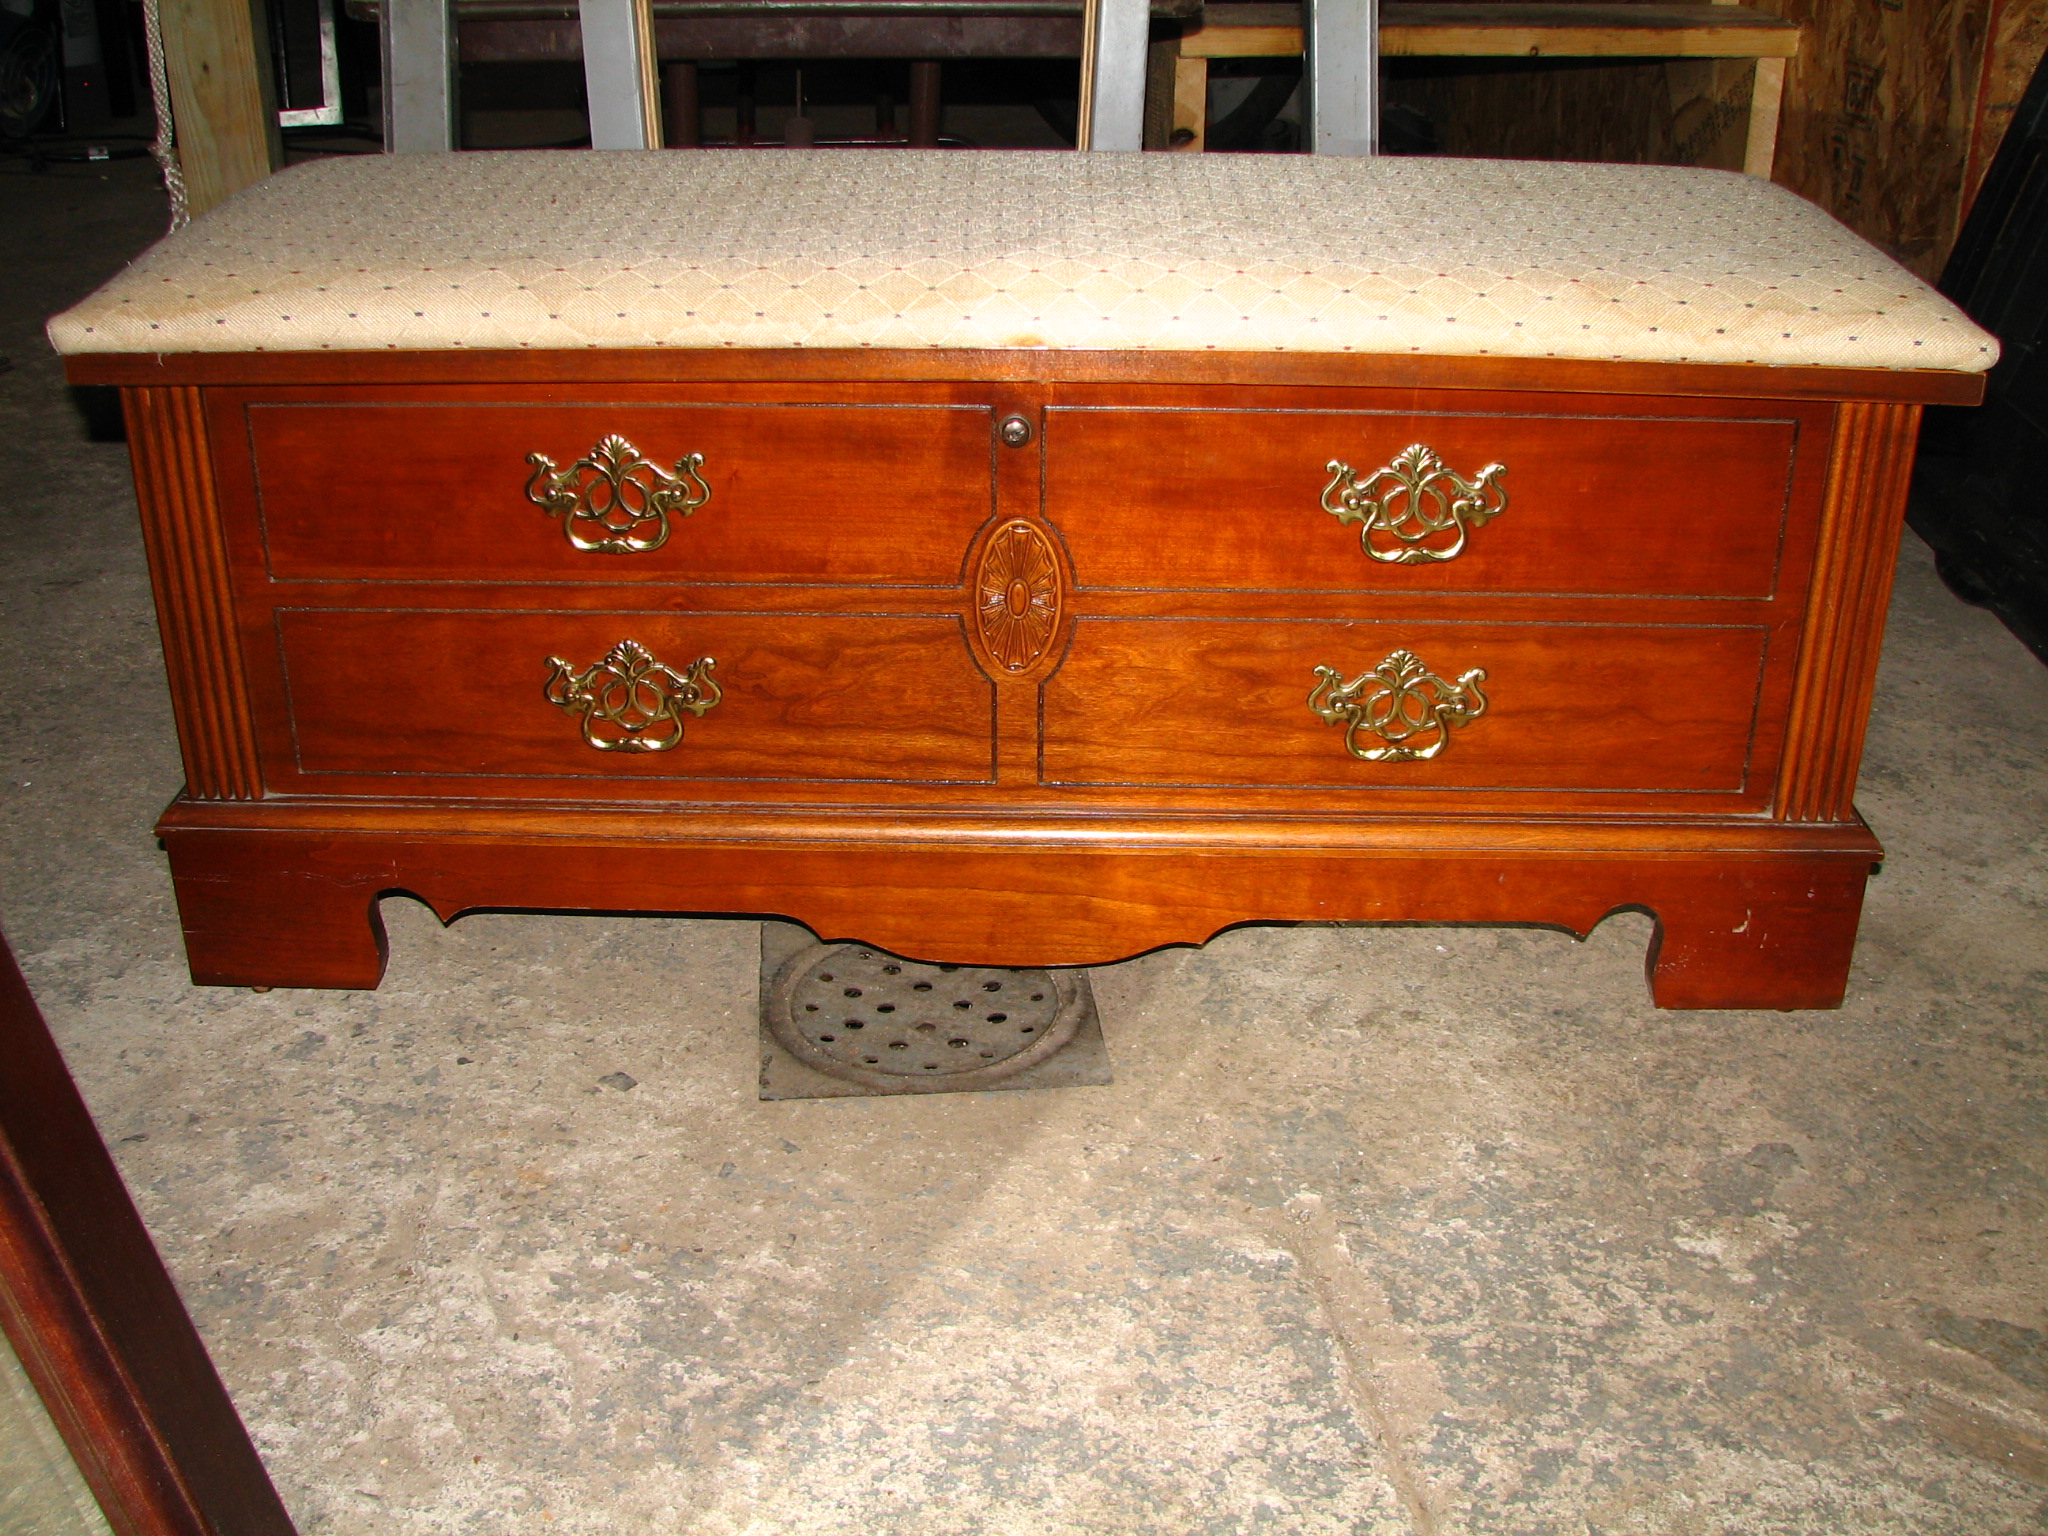 Tuesday s Treasures – Cedar Chest Turned Into a Coffee Table